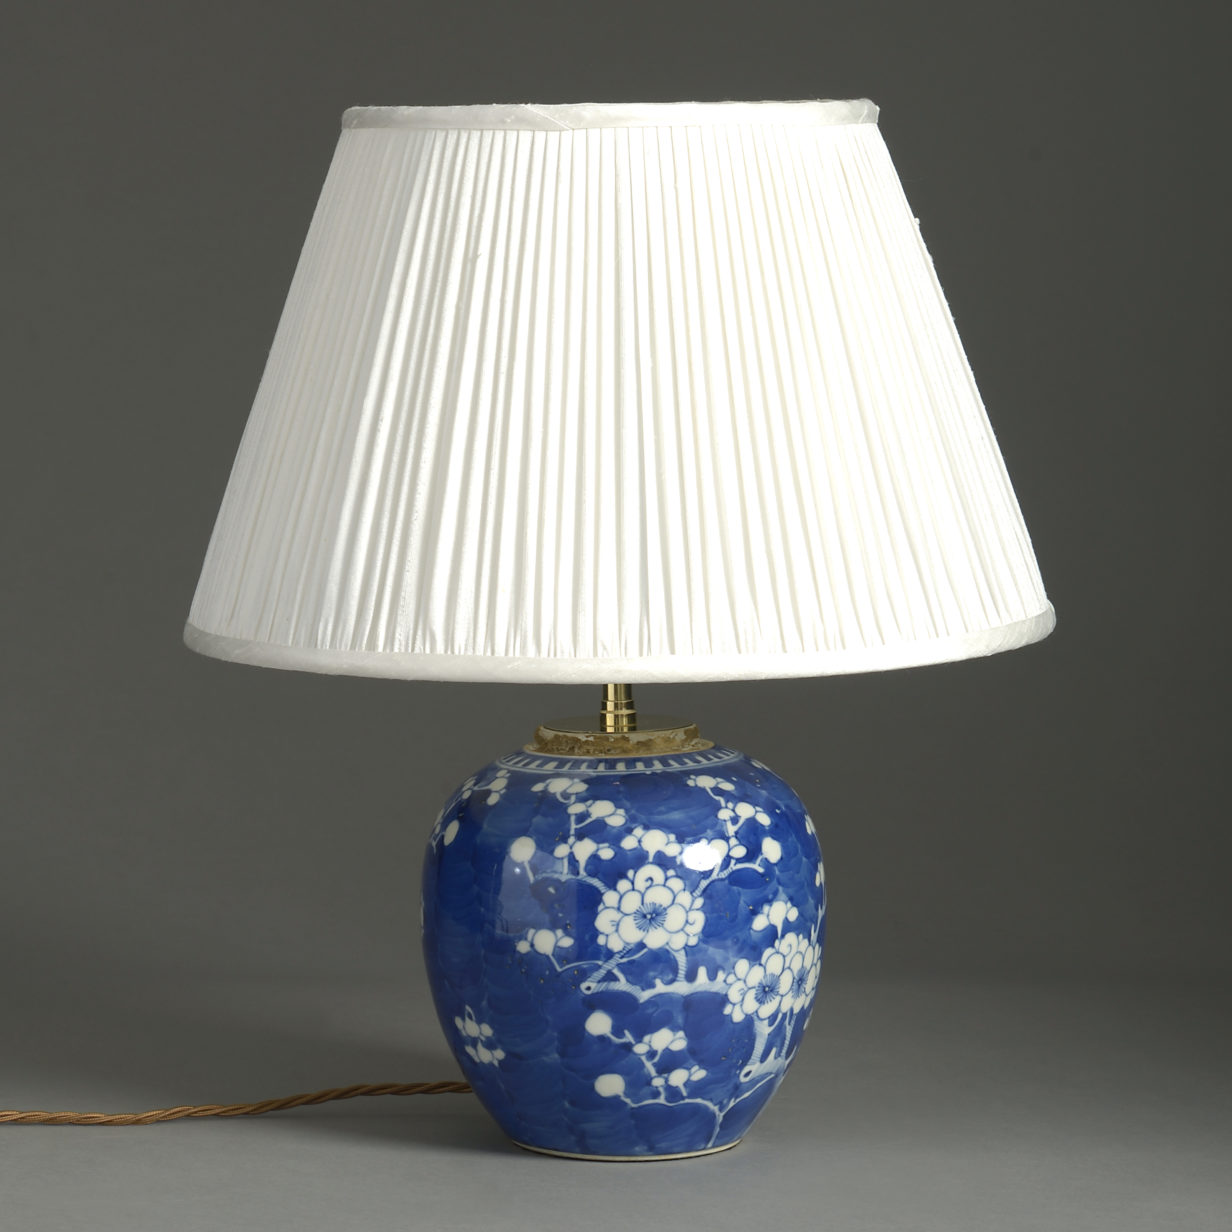 Small Blue and White Vase Lamp